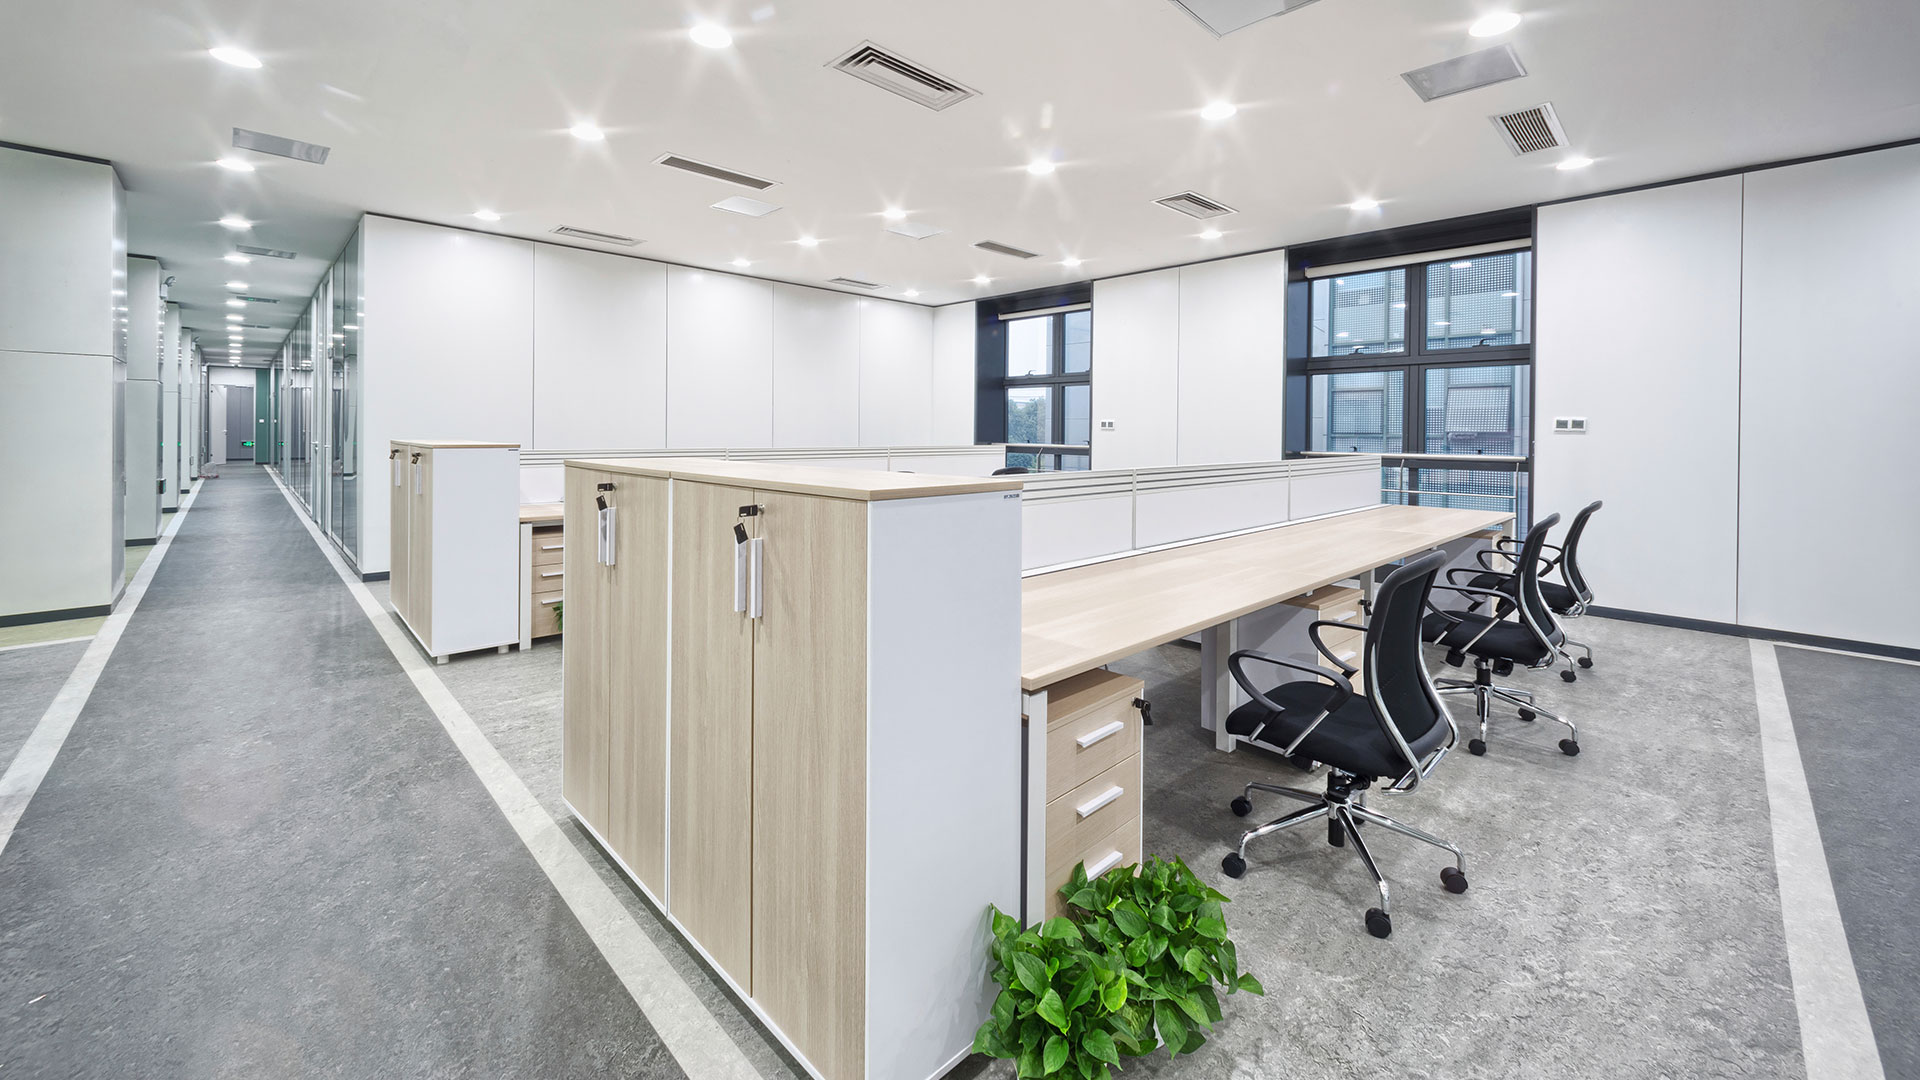 Banks Office Building Cleaning | Kitchener Cleaners, Janitorial and Commercial  Cleaning